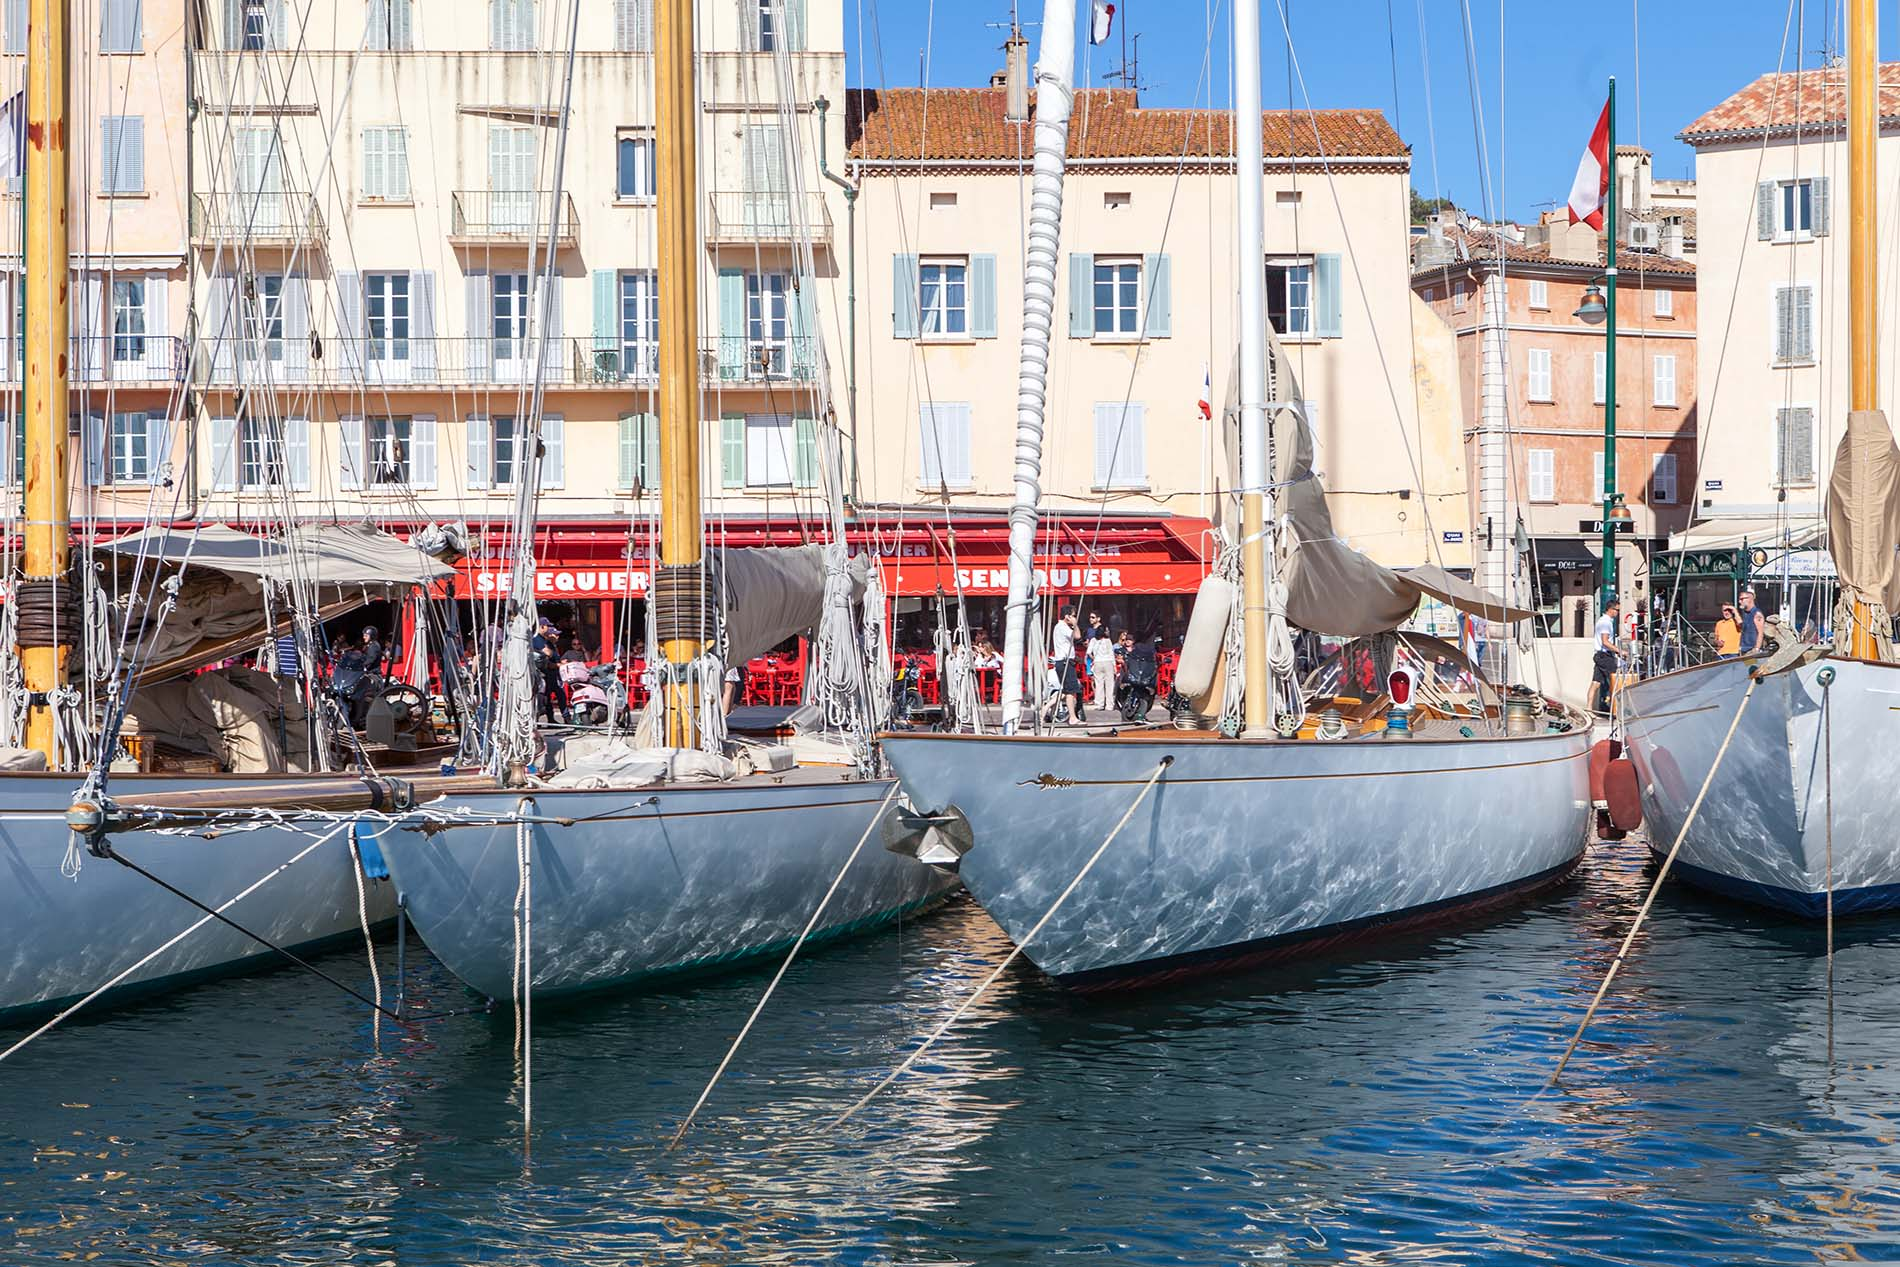 Saint Tropez yachts in the harbour